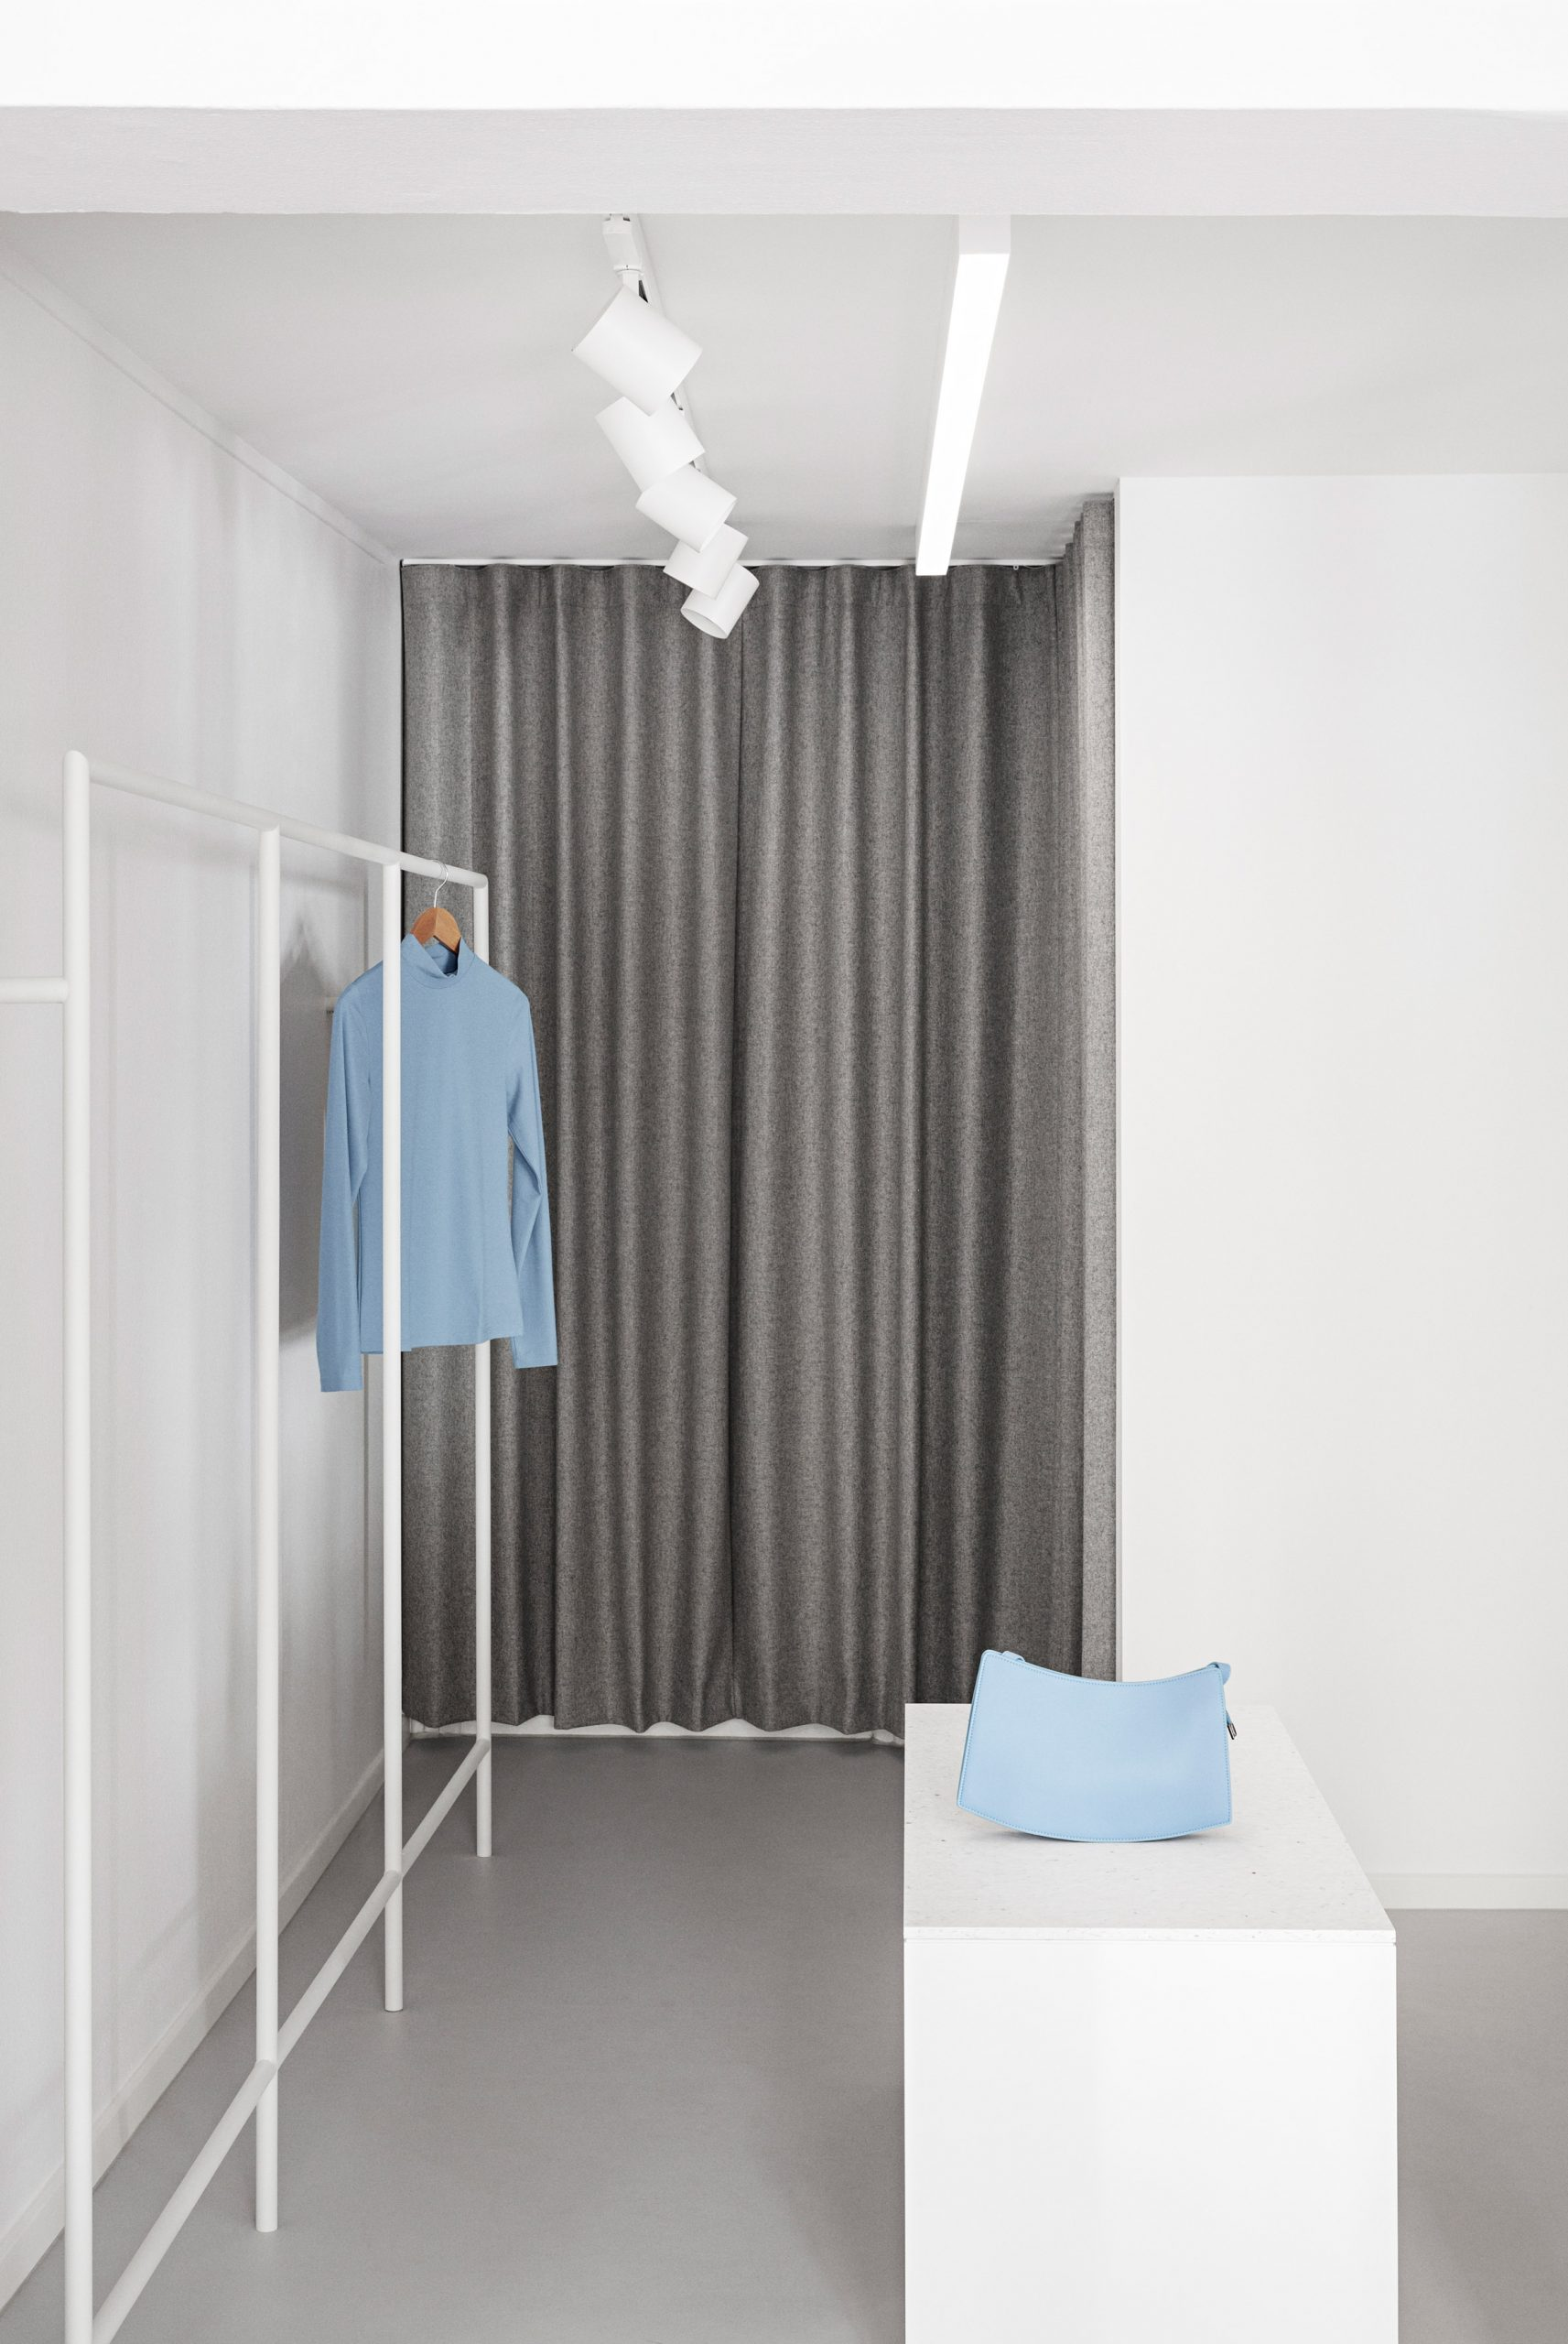 Grey wool changing room curtains and white rails in the OCE Copenhagen store interior